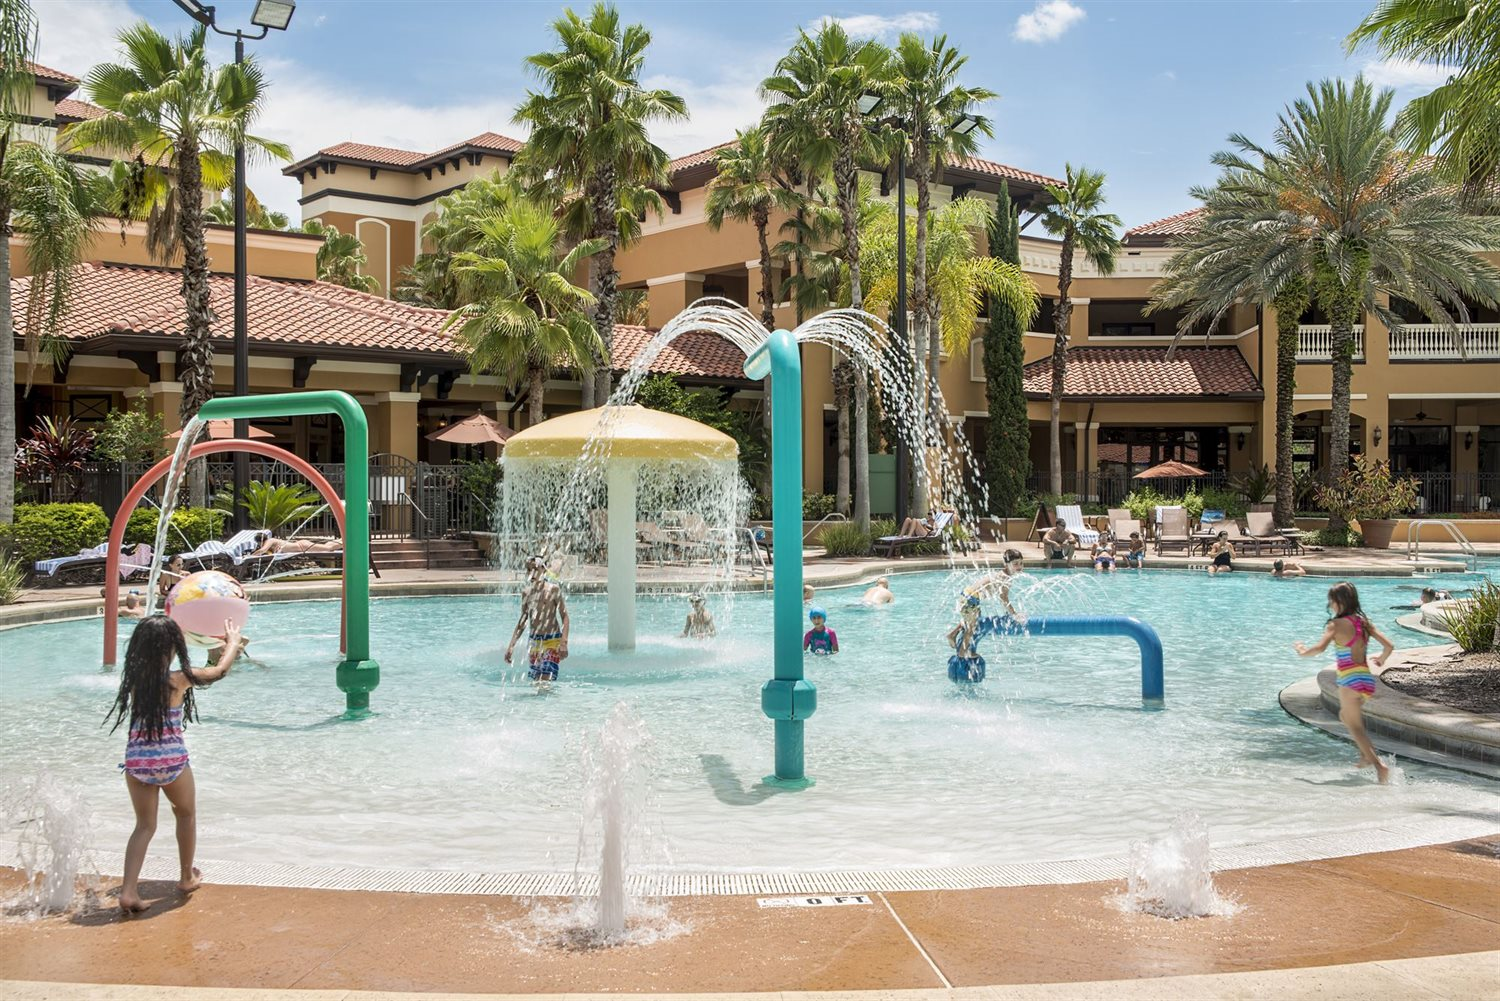 Kids Splashing in the pool at our Orlando resort